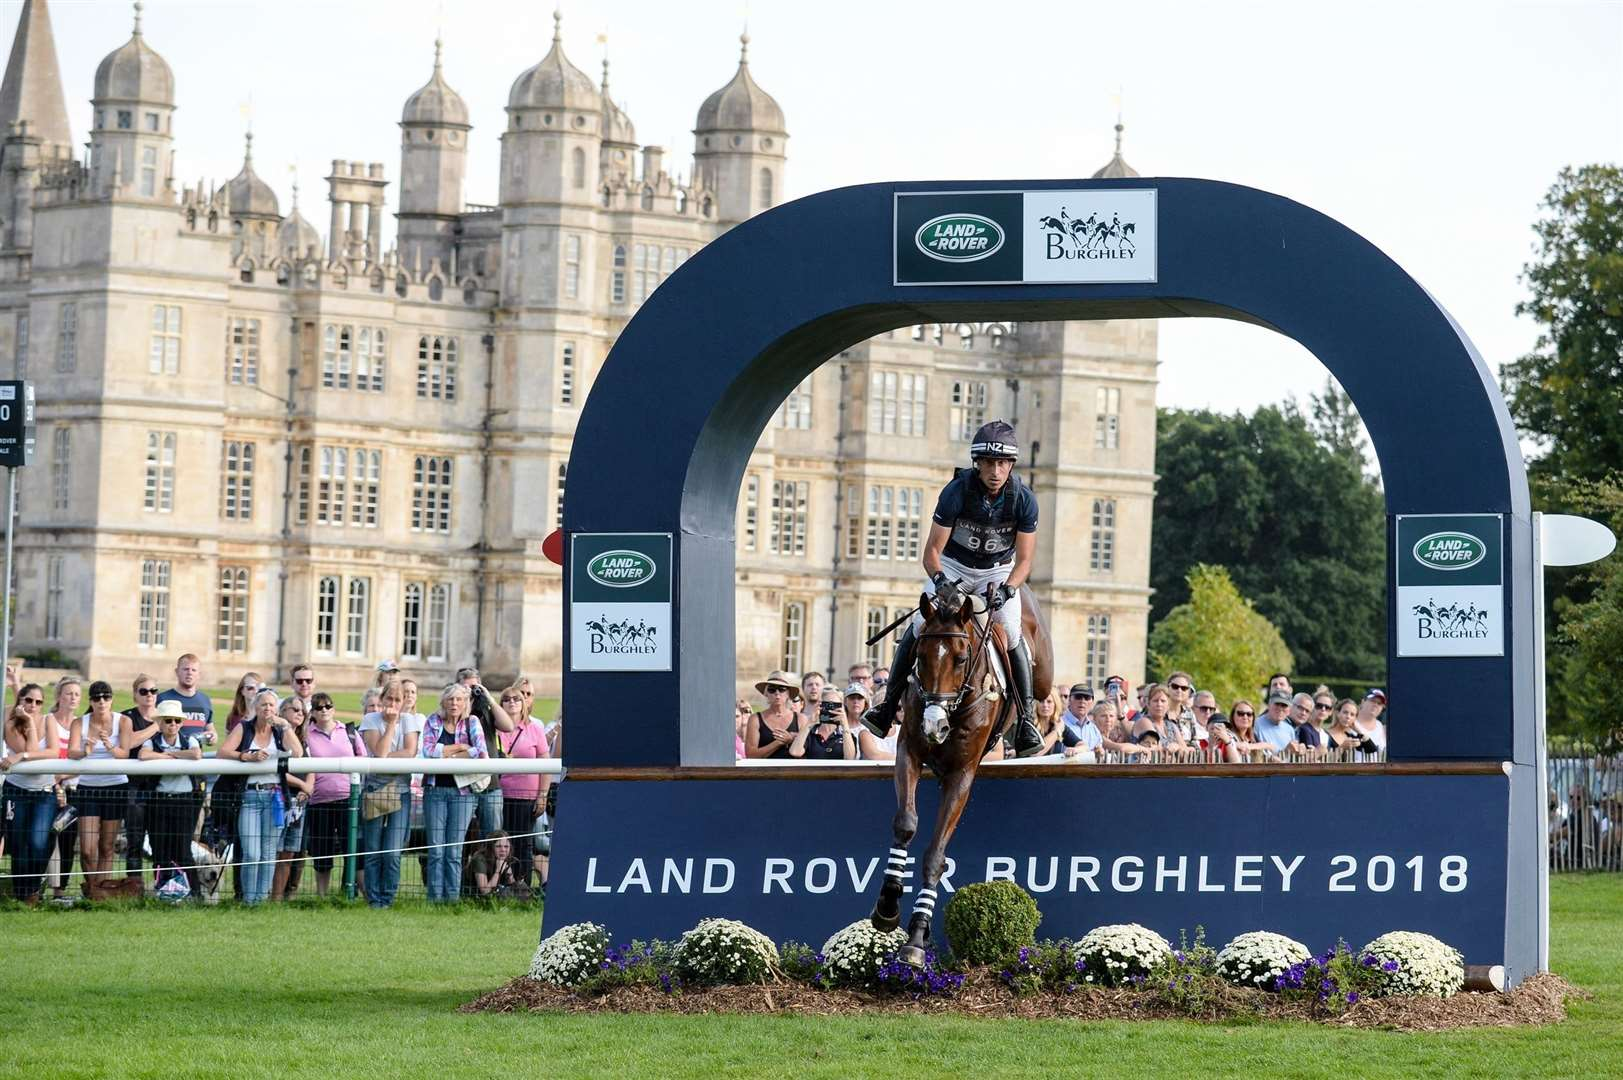 Tim Price riding Ringwood Sky Boy during the cross country phase of the Land Rover Burghley Horse Trials in the grounds of Burghley House near Stamford in Lincolnshire in the UK in 2018